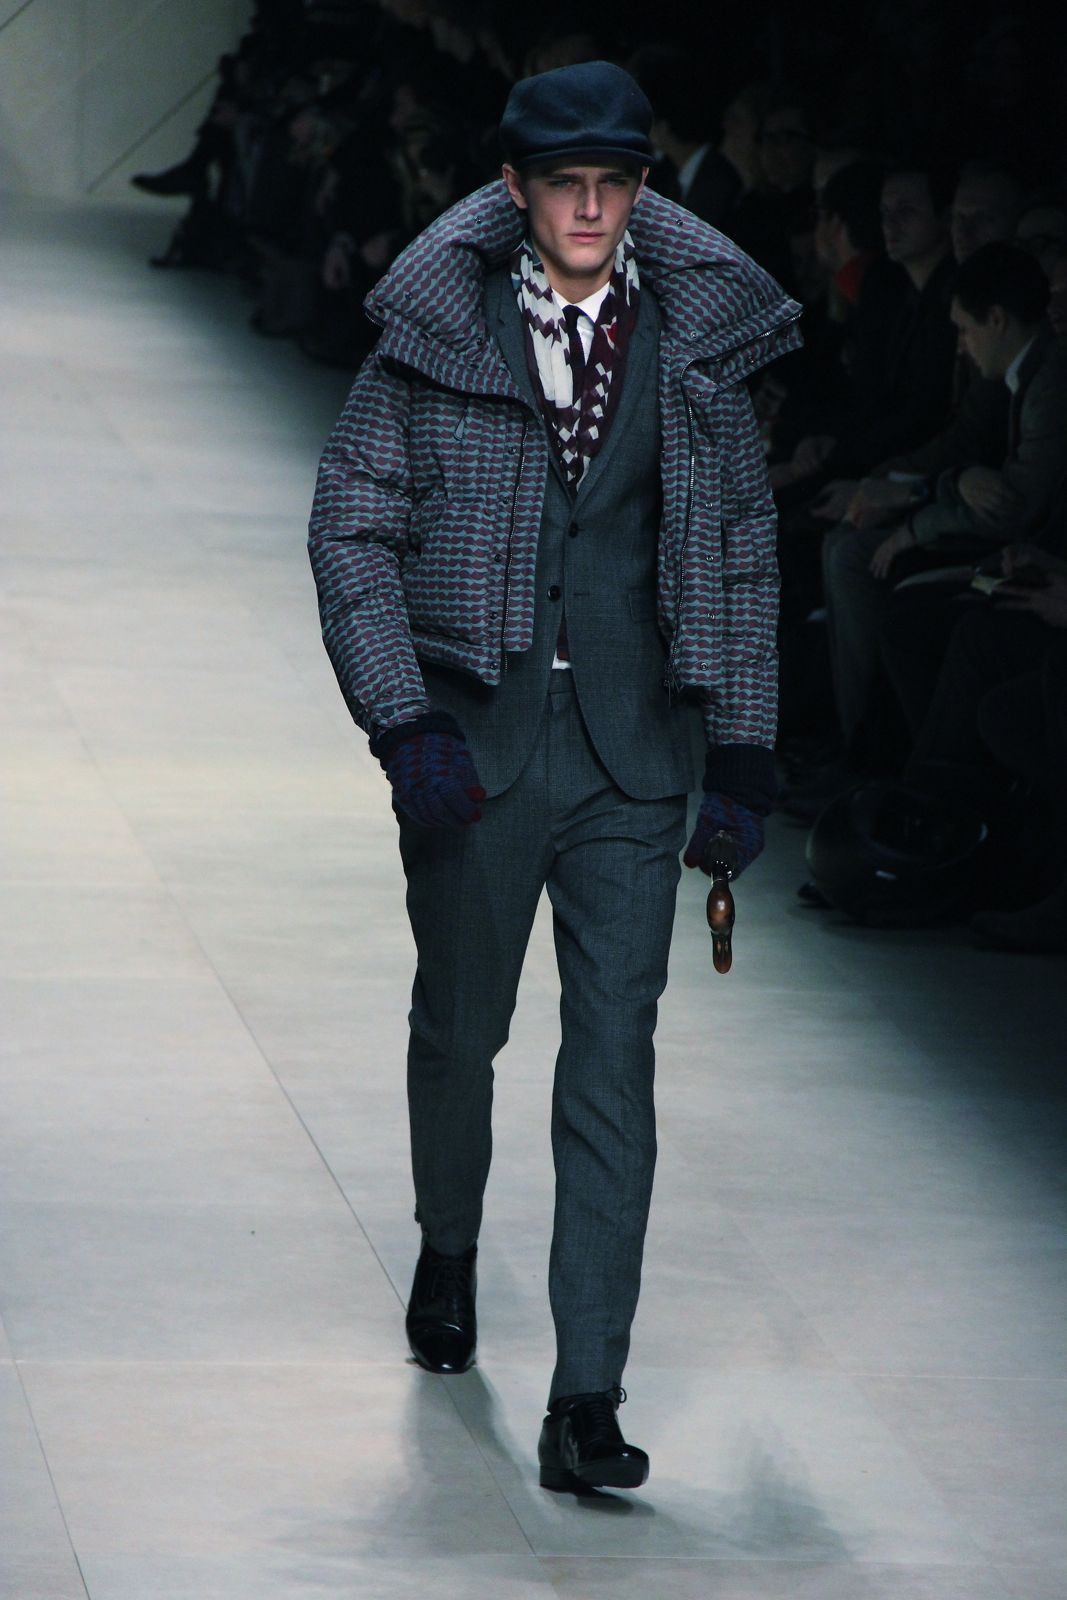 Burberry Prorsum Men's Collection Fall Winter 2012 Milano Fashion Week